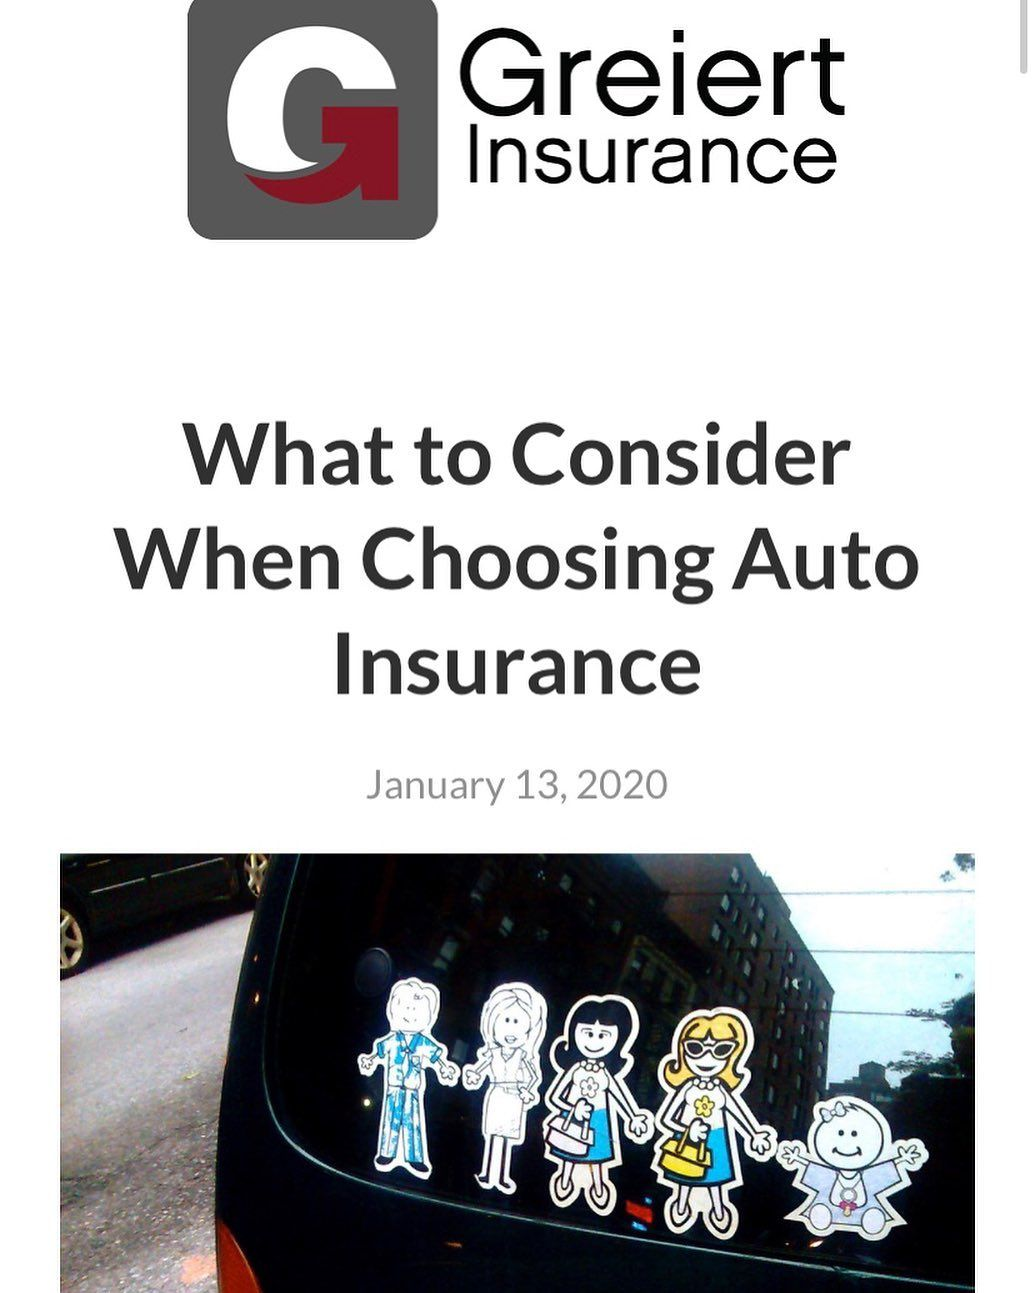 What should you consider when choosing auto insurance